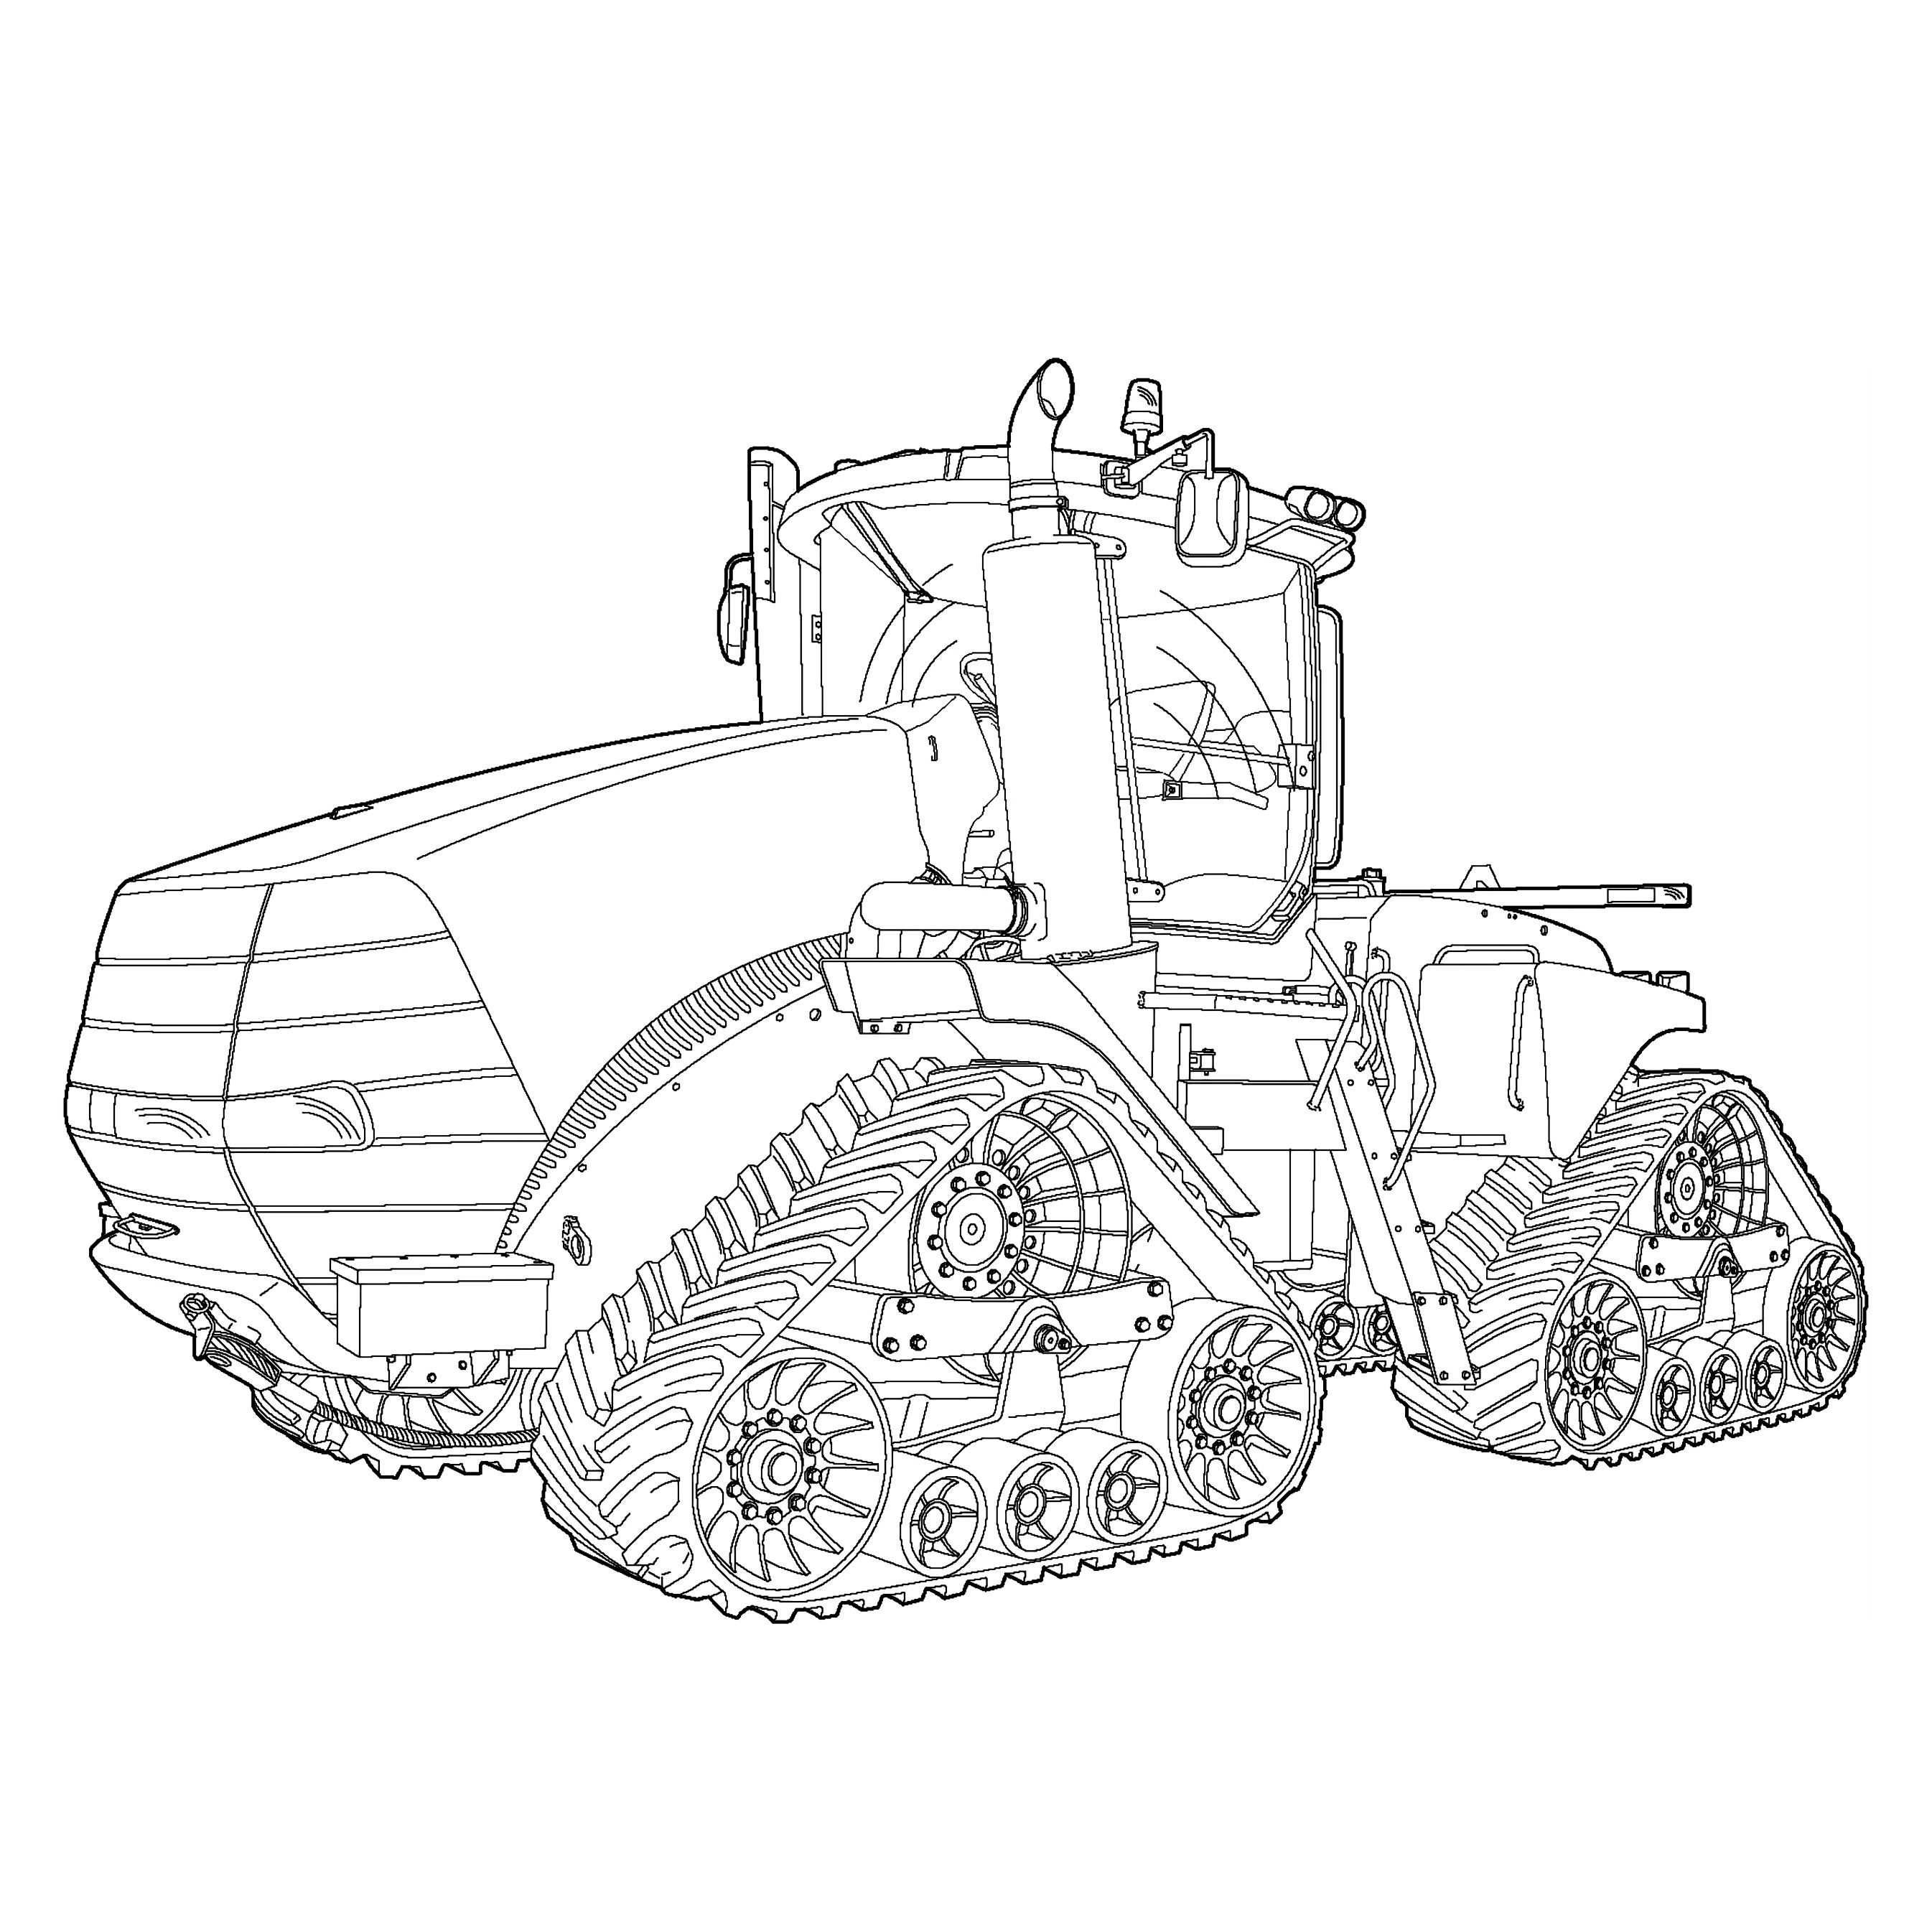 case international tractors coloring pages - photo#7